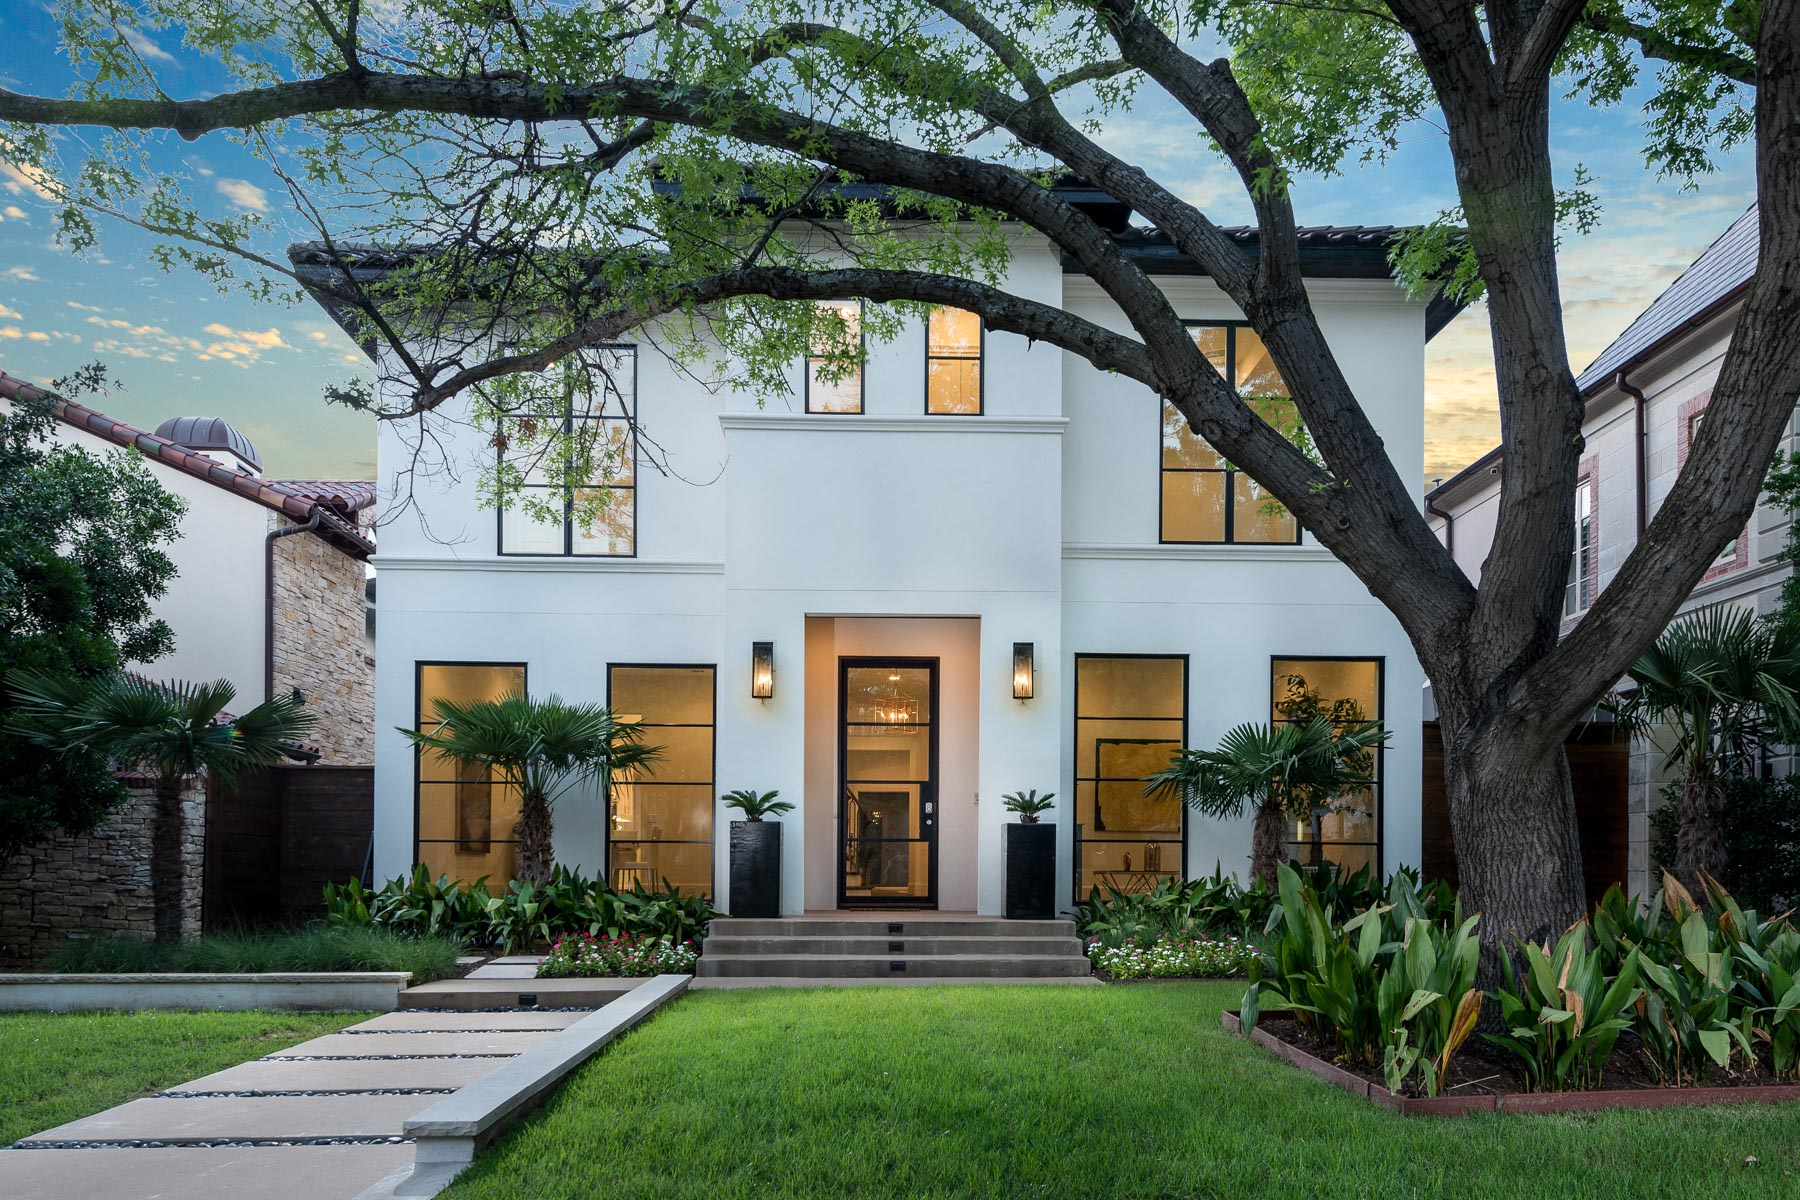 獨棟家庭住宅 為 出售 在 New Construction Soft Contemporary 3514 Lindenwood Ave Dallas, 德克薩斯州, 75205 美國